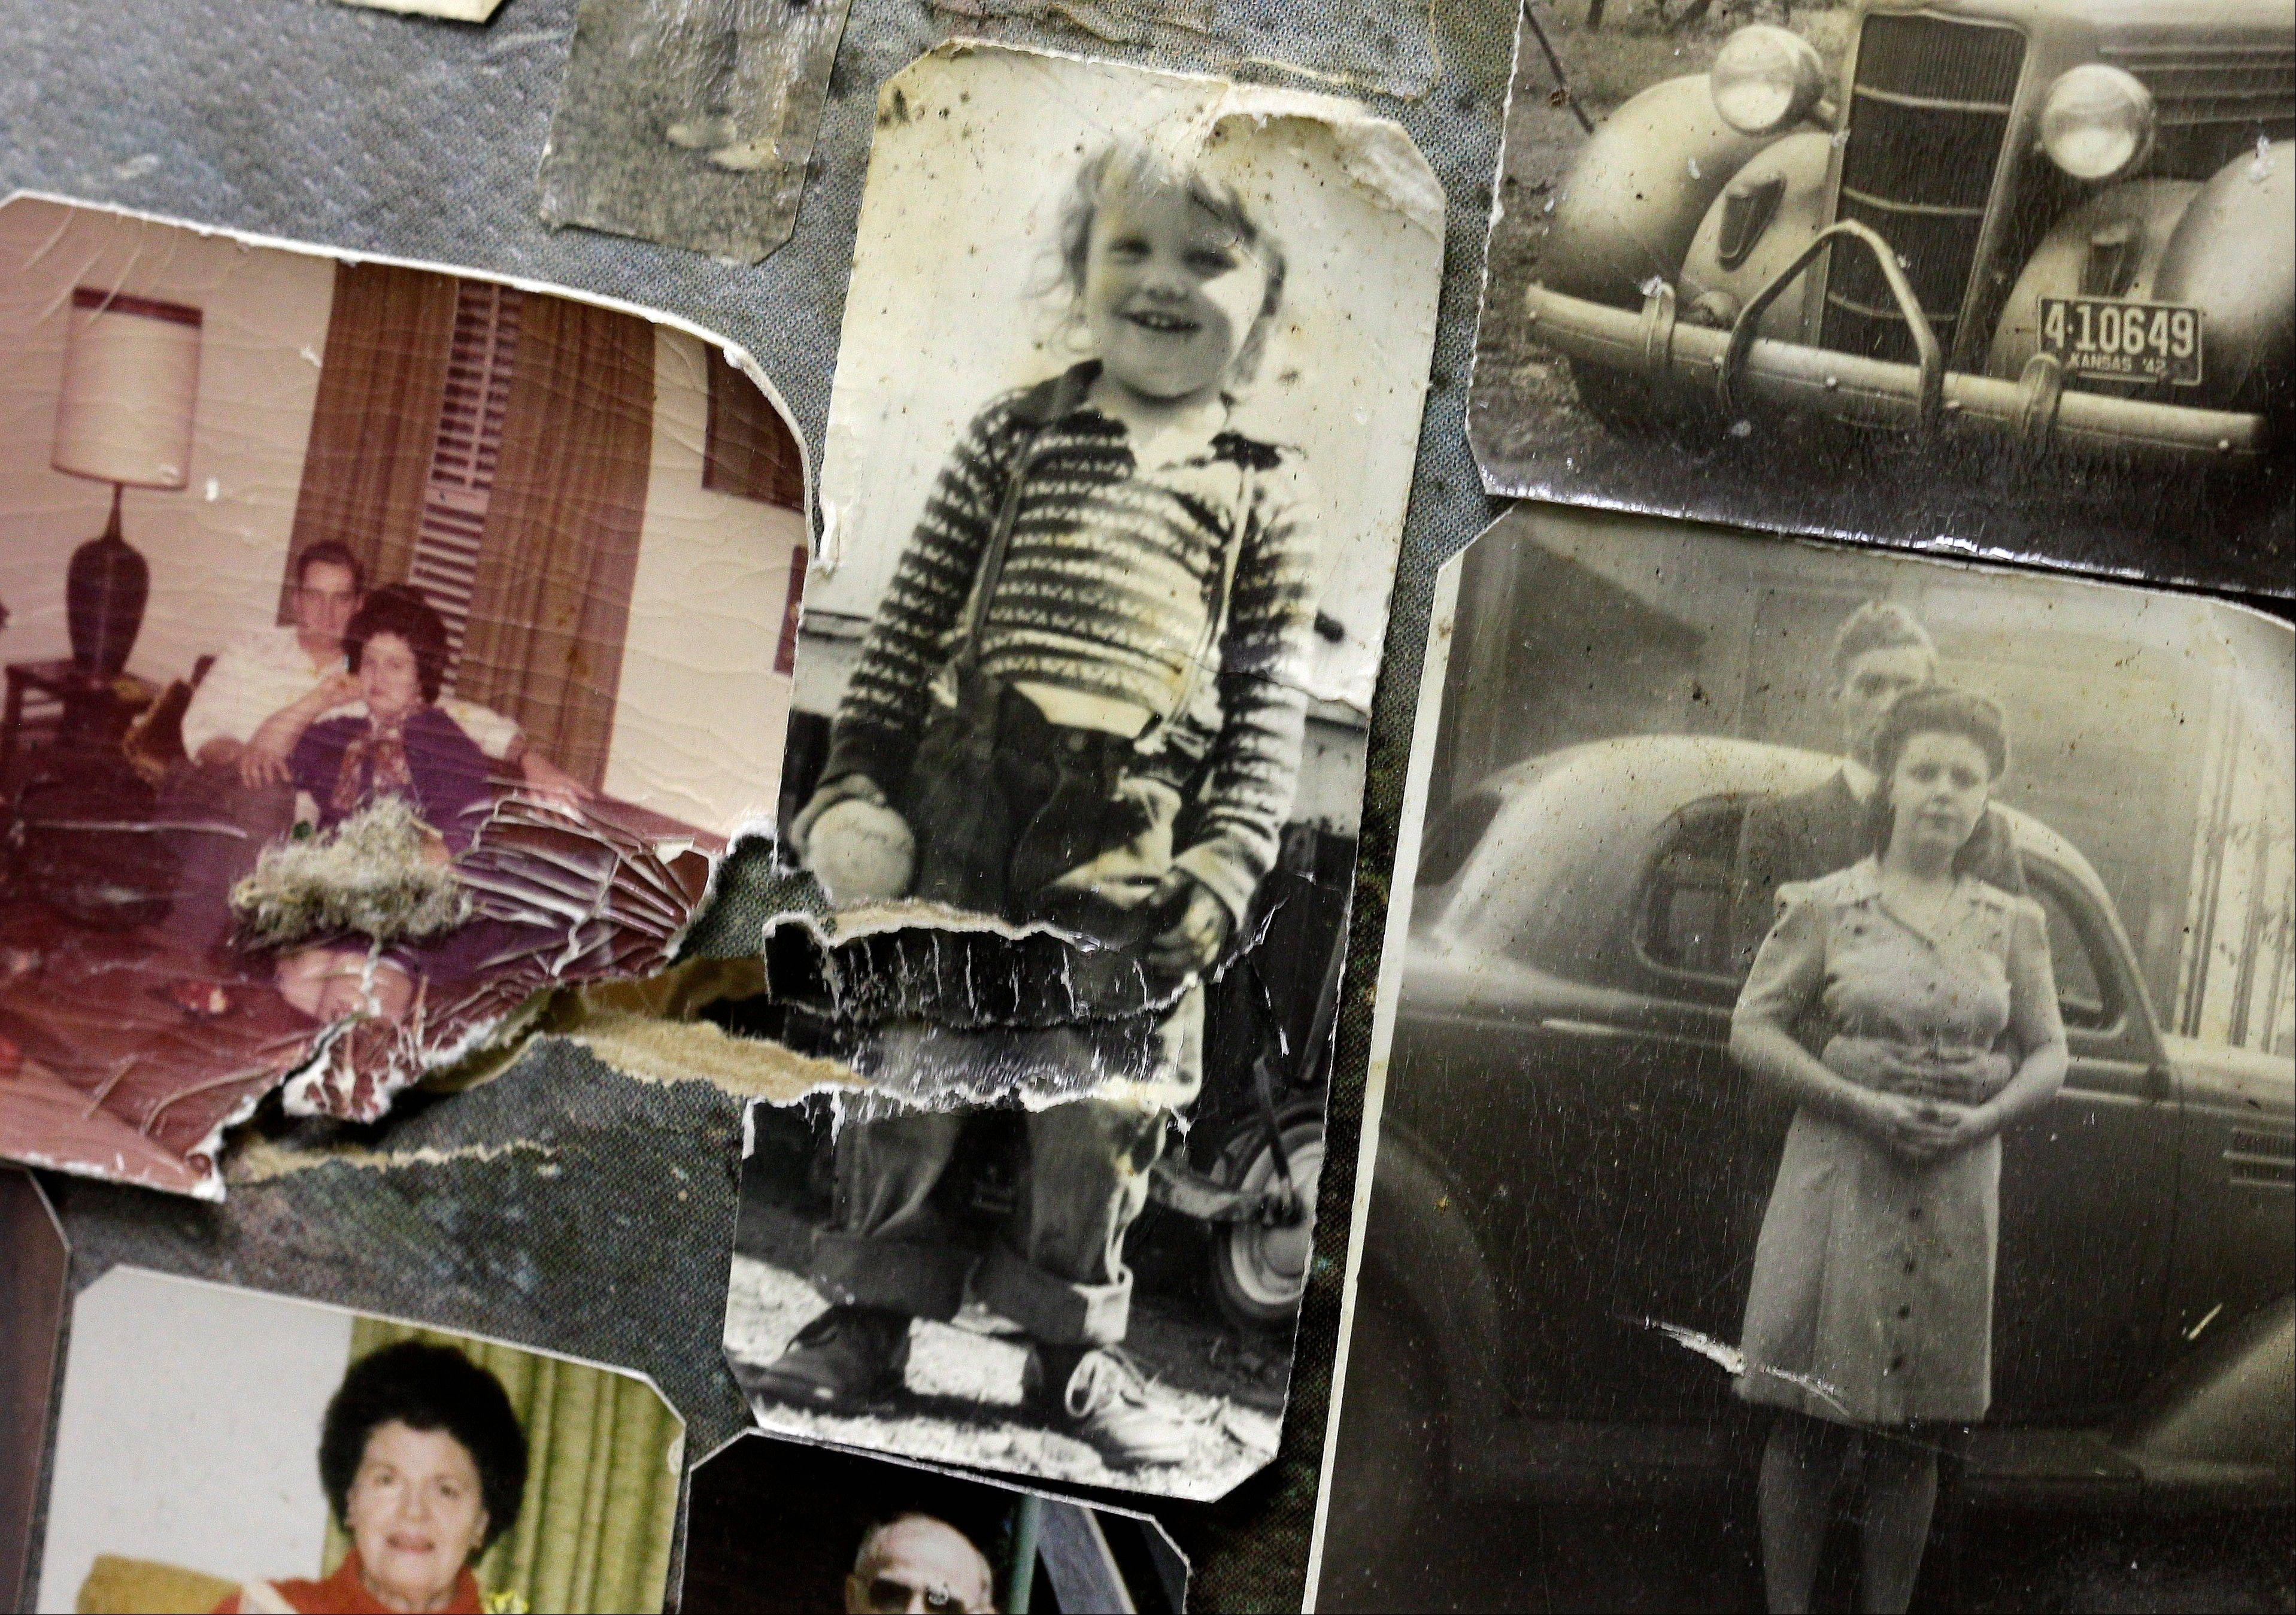 Damaged photos are seen at the First Baptist Church in Carthage, Mo. where volunteers are cleaning and sorting photos and other personal documents found among rubble after a powerful EF-5 tornado destroyed a large swath of nearby Joplin, Mo. on May 22, 2011. The church has taken on the task of preserving thousands of lost photos and reuniting them with their owners.